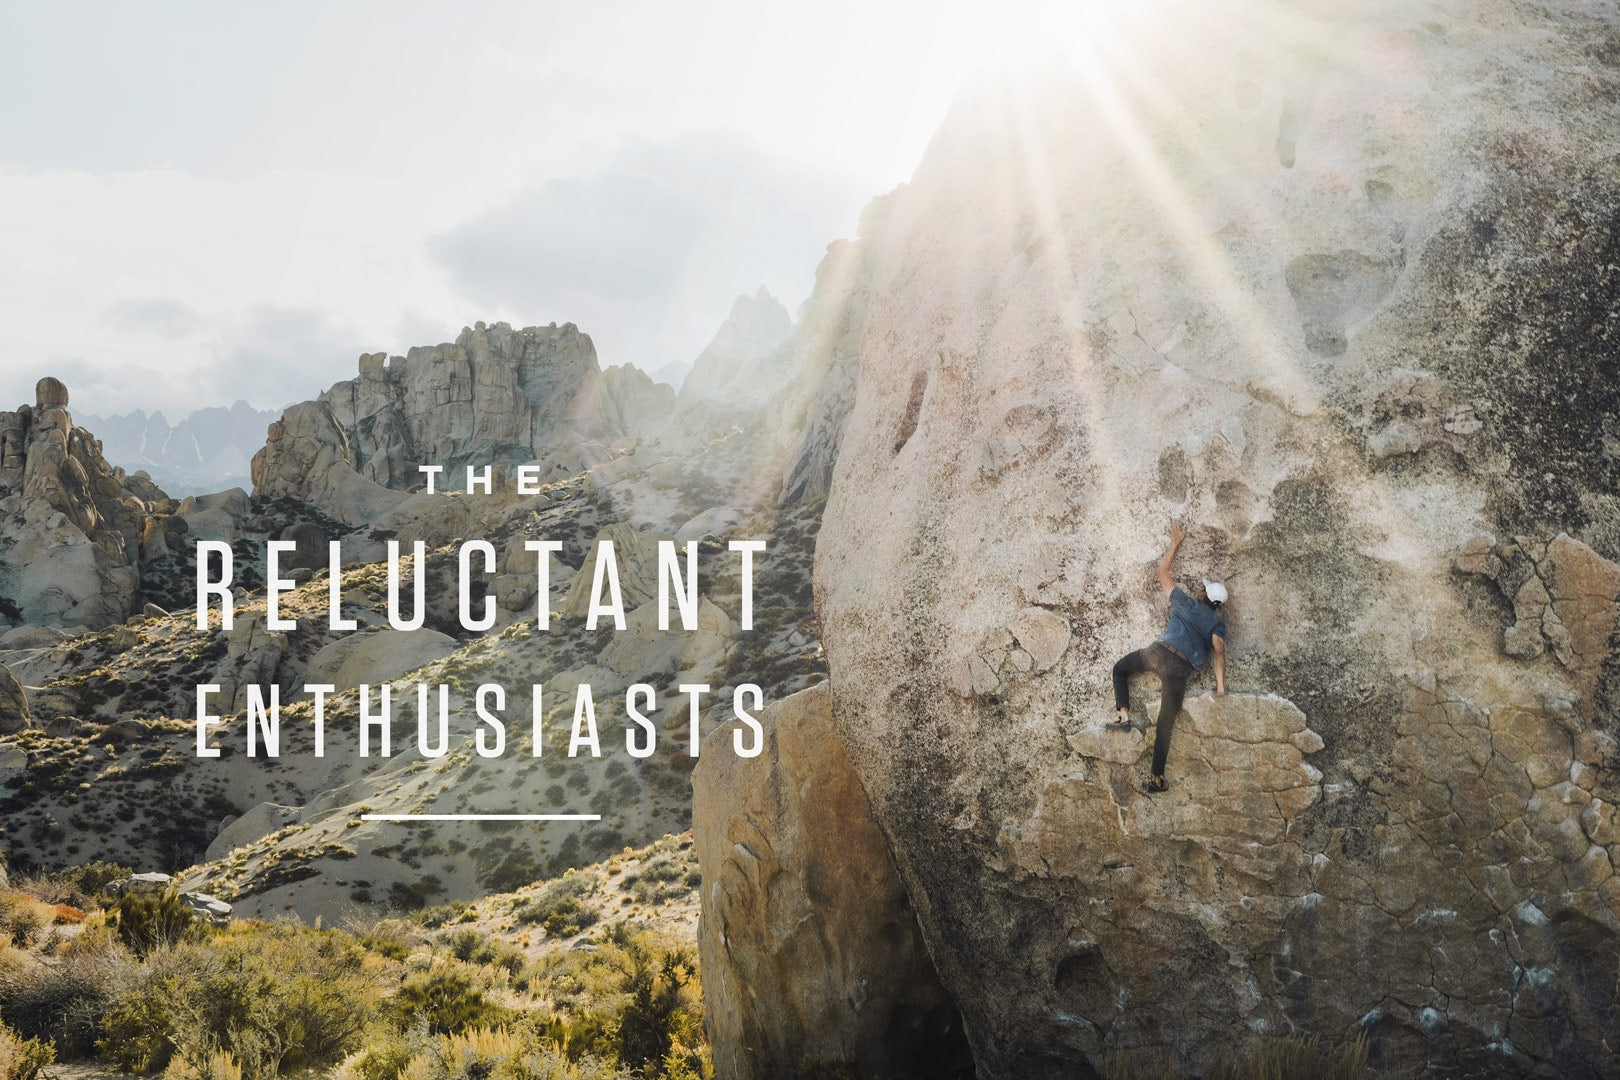 Tillak - The Reluctant Enthusiasts